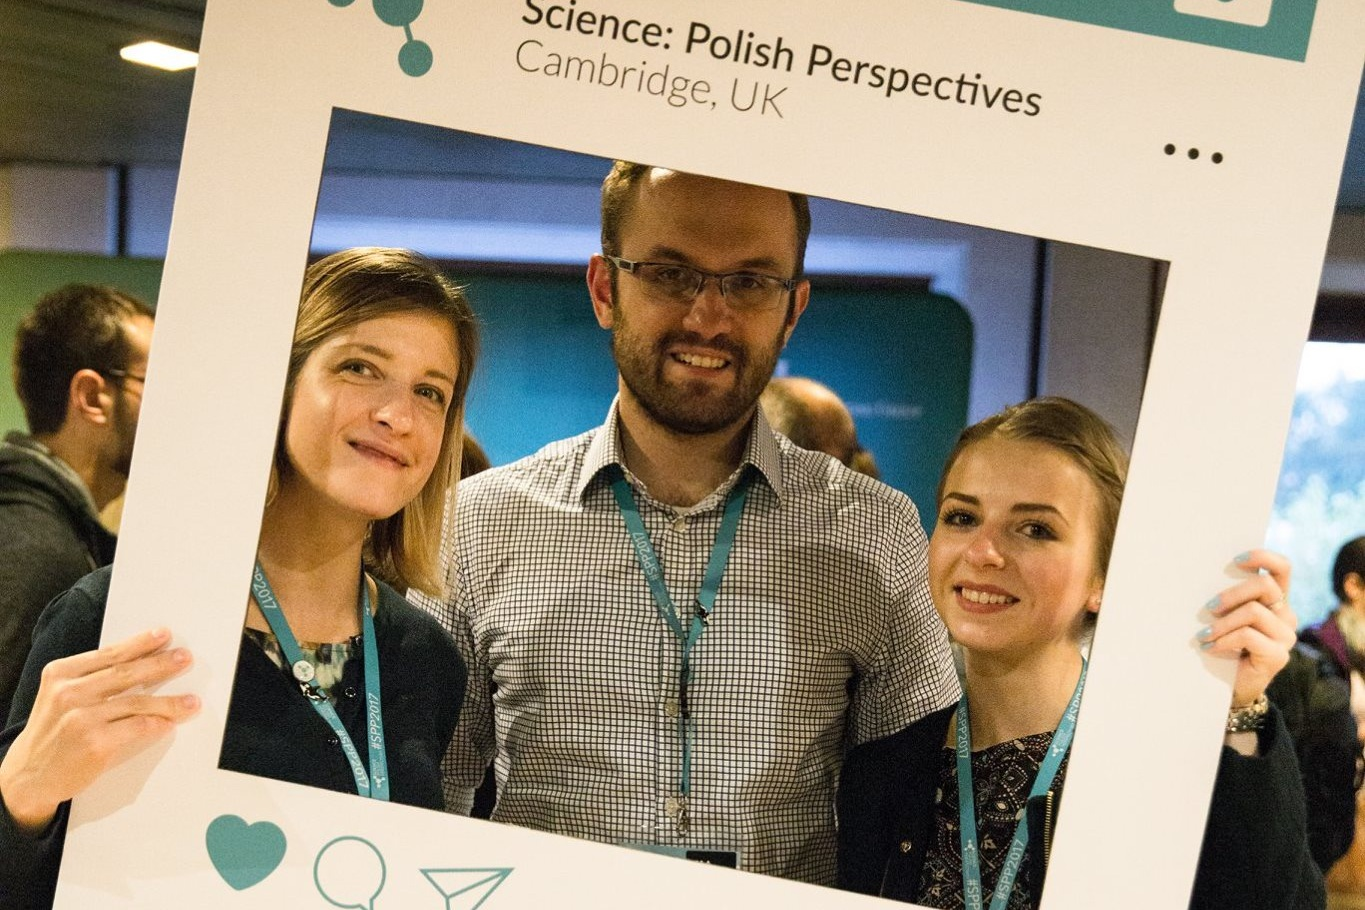 Science: Polish Perspectives Conference - Cambridge, UK | 3-4 Nov 2017